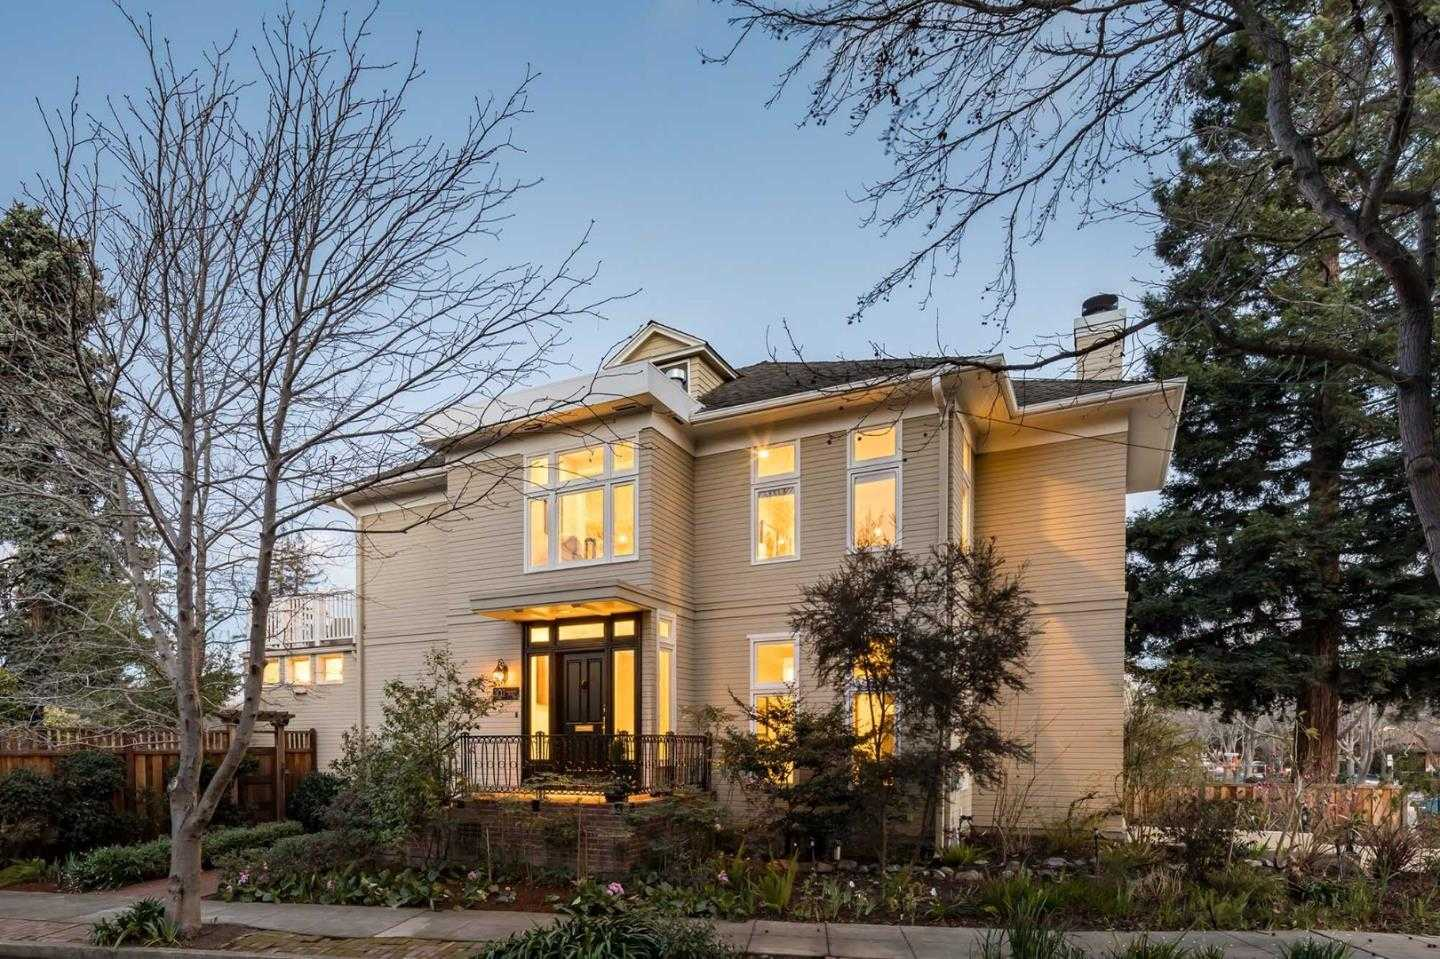 $5,988,000 - 3Br/3Ba -  for Sale in Palo Alto